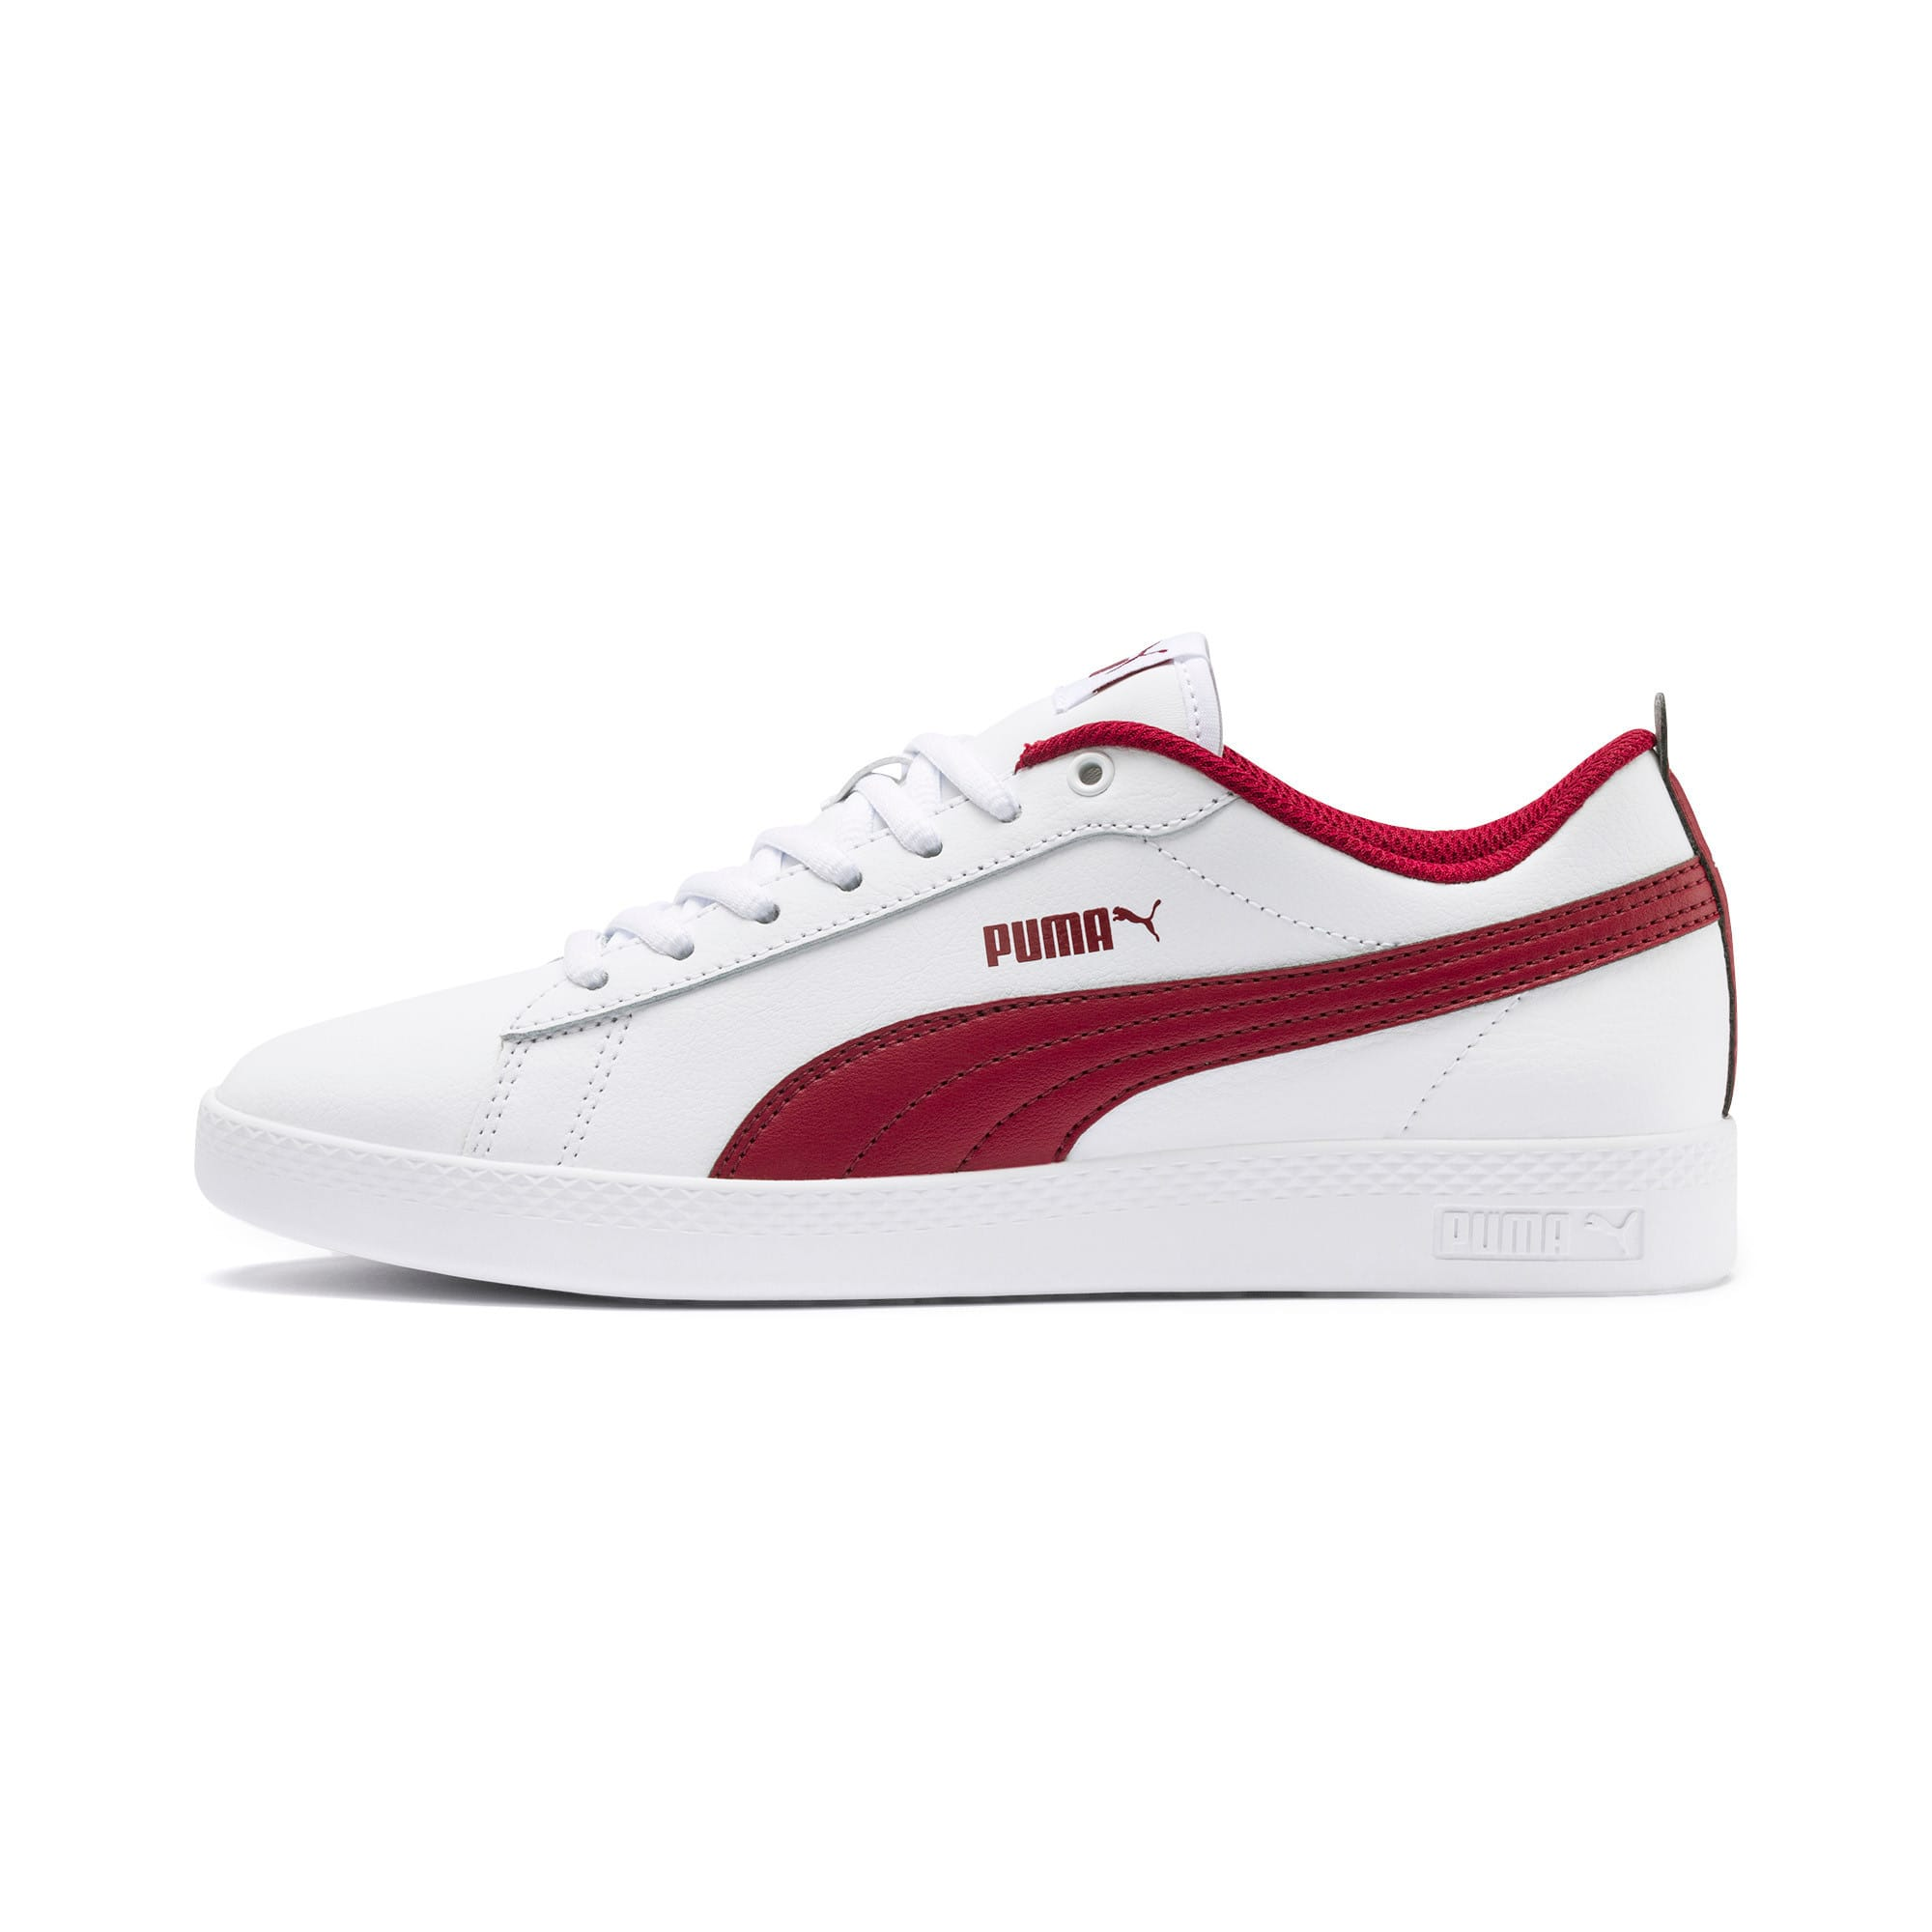 Thumbnail 1 of Basket en cuir Smash v2 pour femme, Puma White-Rhubarb, medium